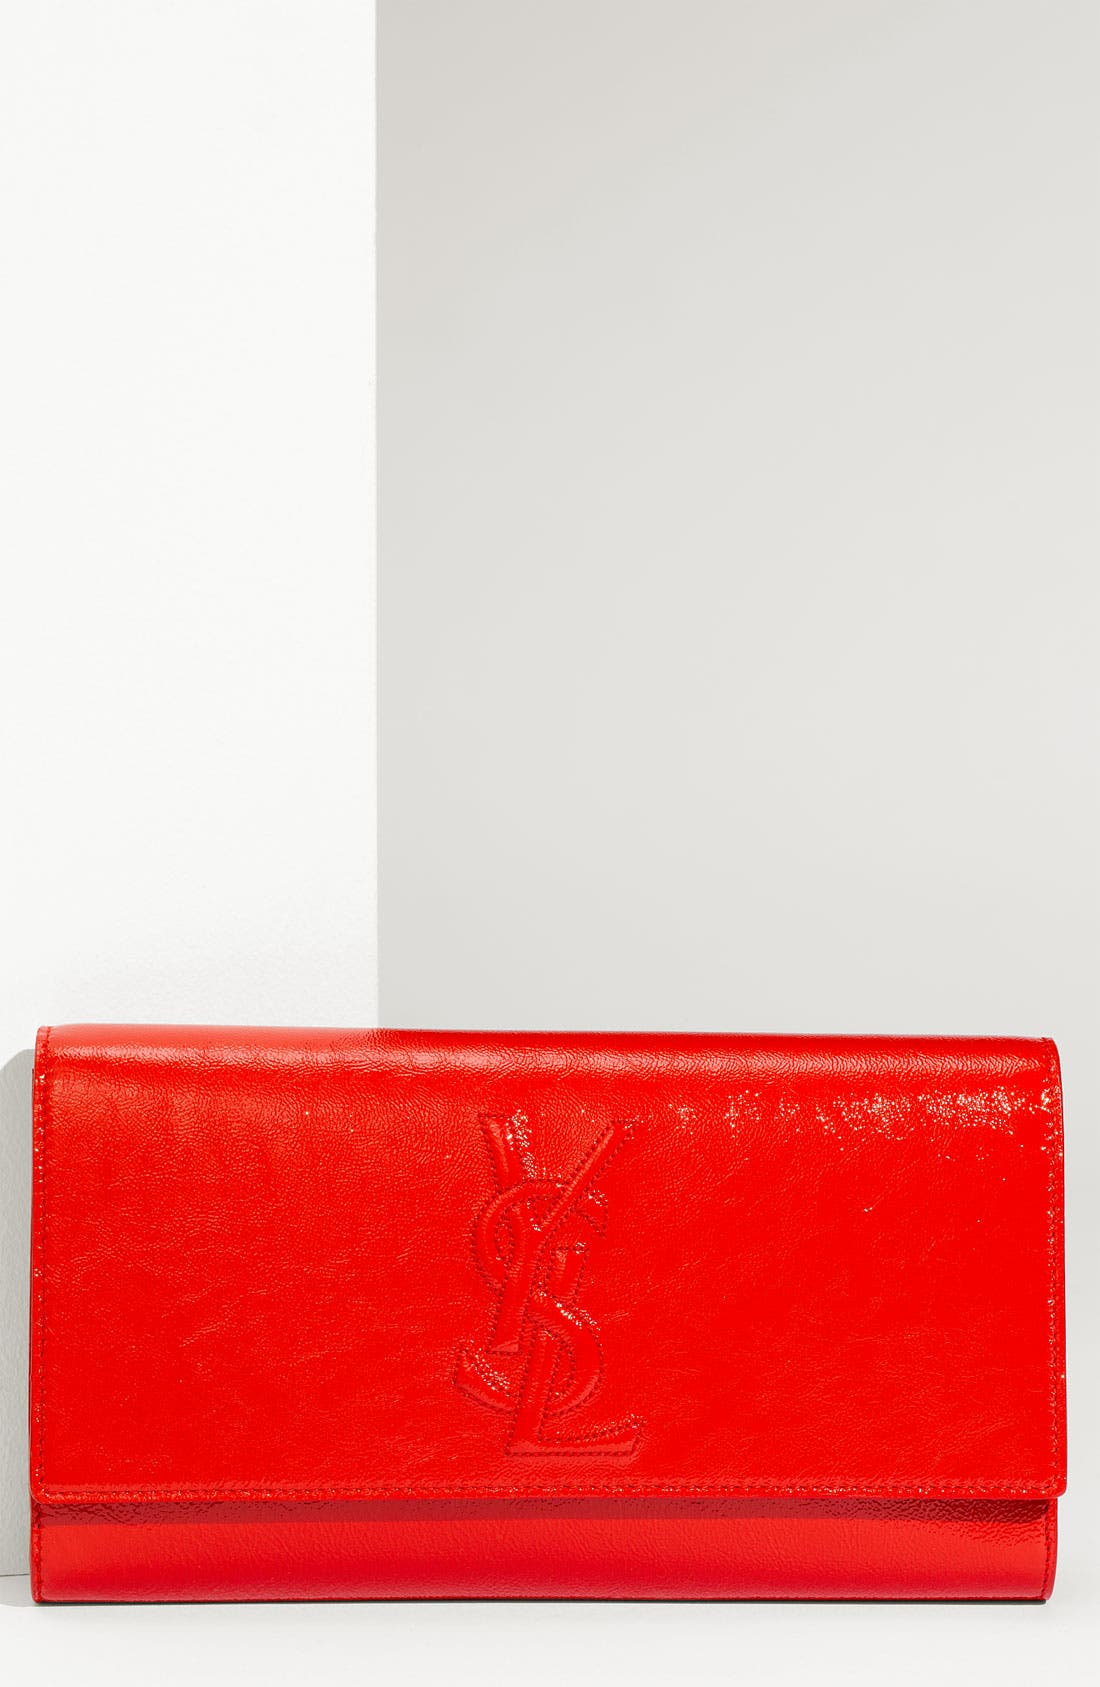 Alternate Image 1 Selected - Yves Saint Laurent 'Belle de Jour - Large' Patent Envelope Clutch